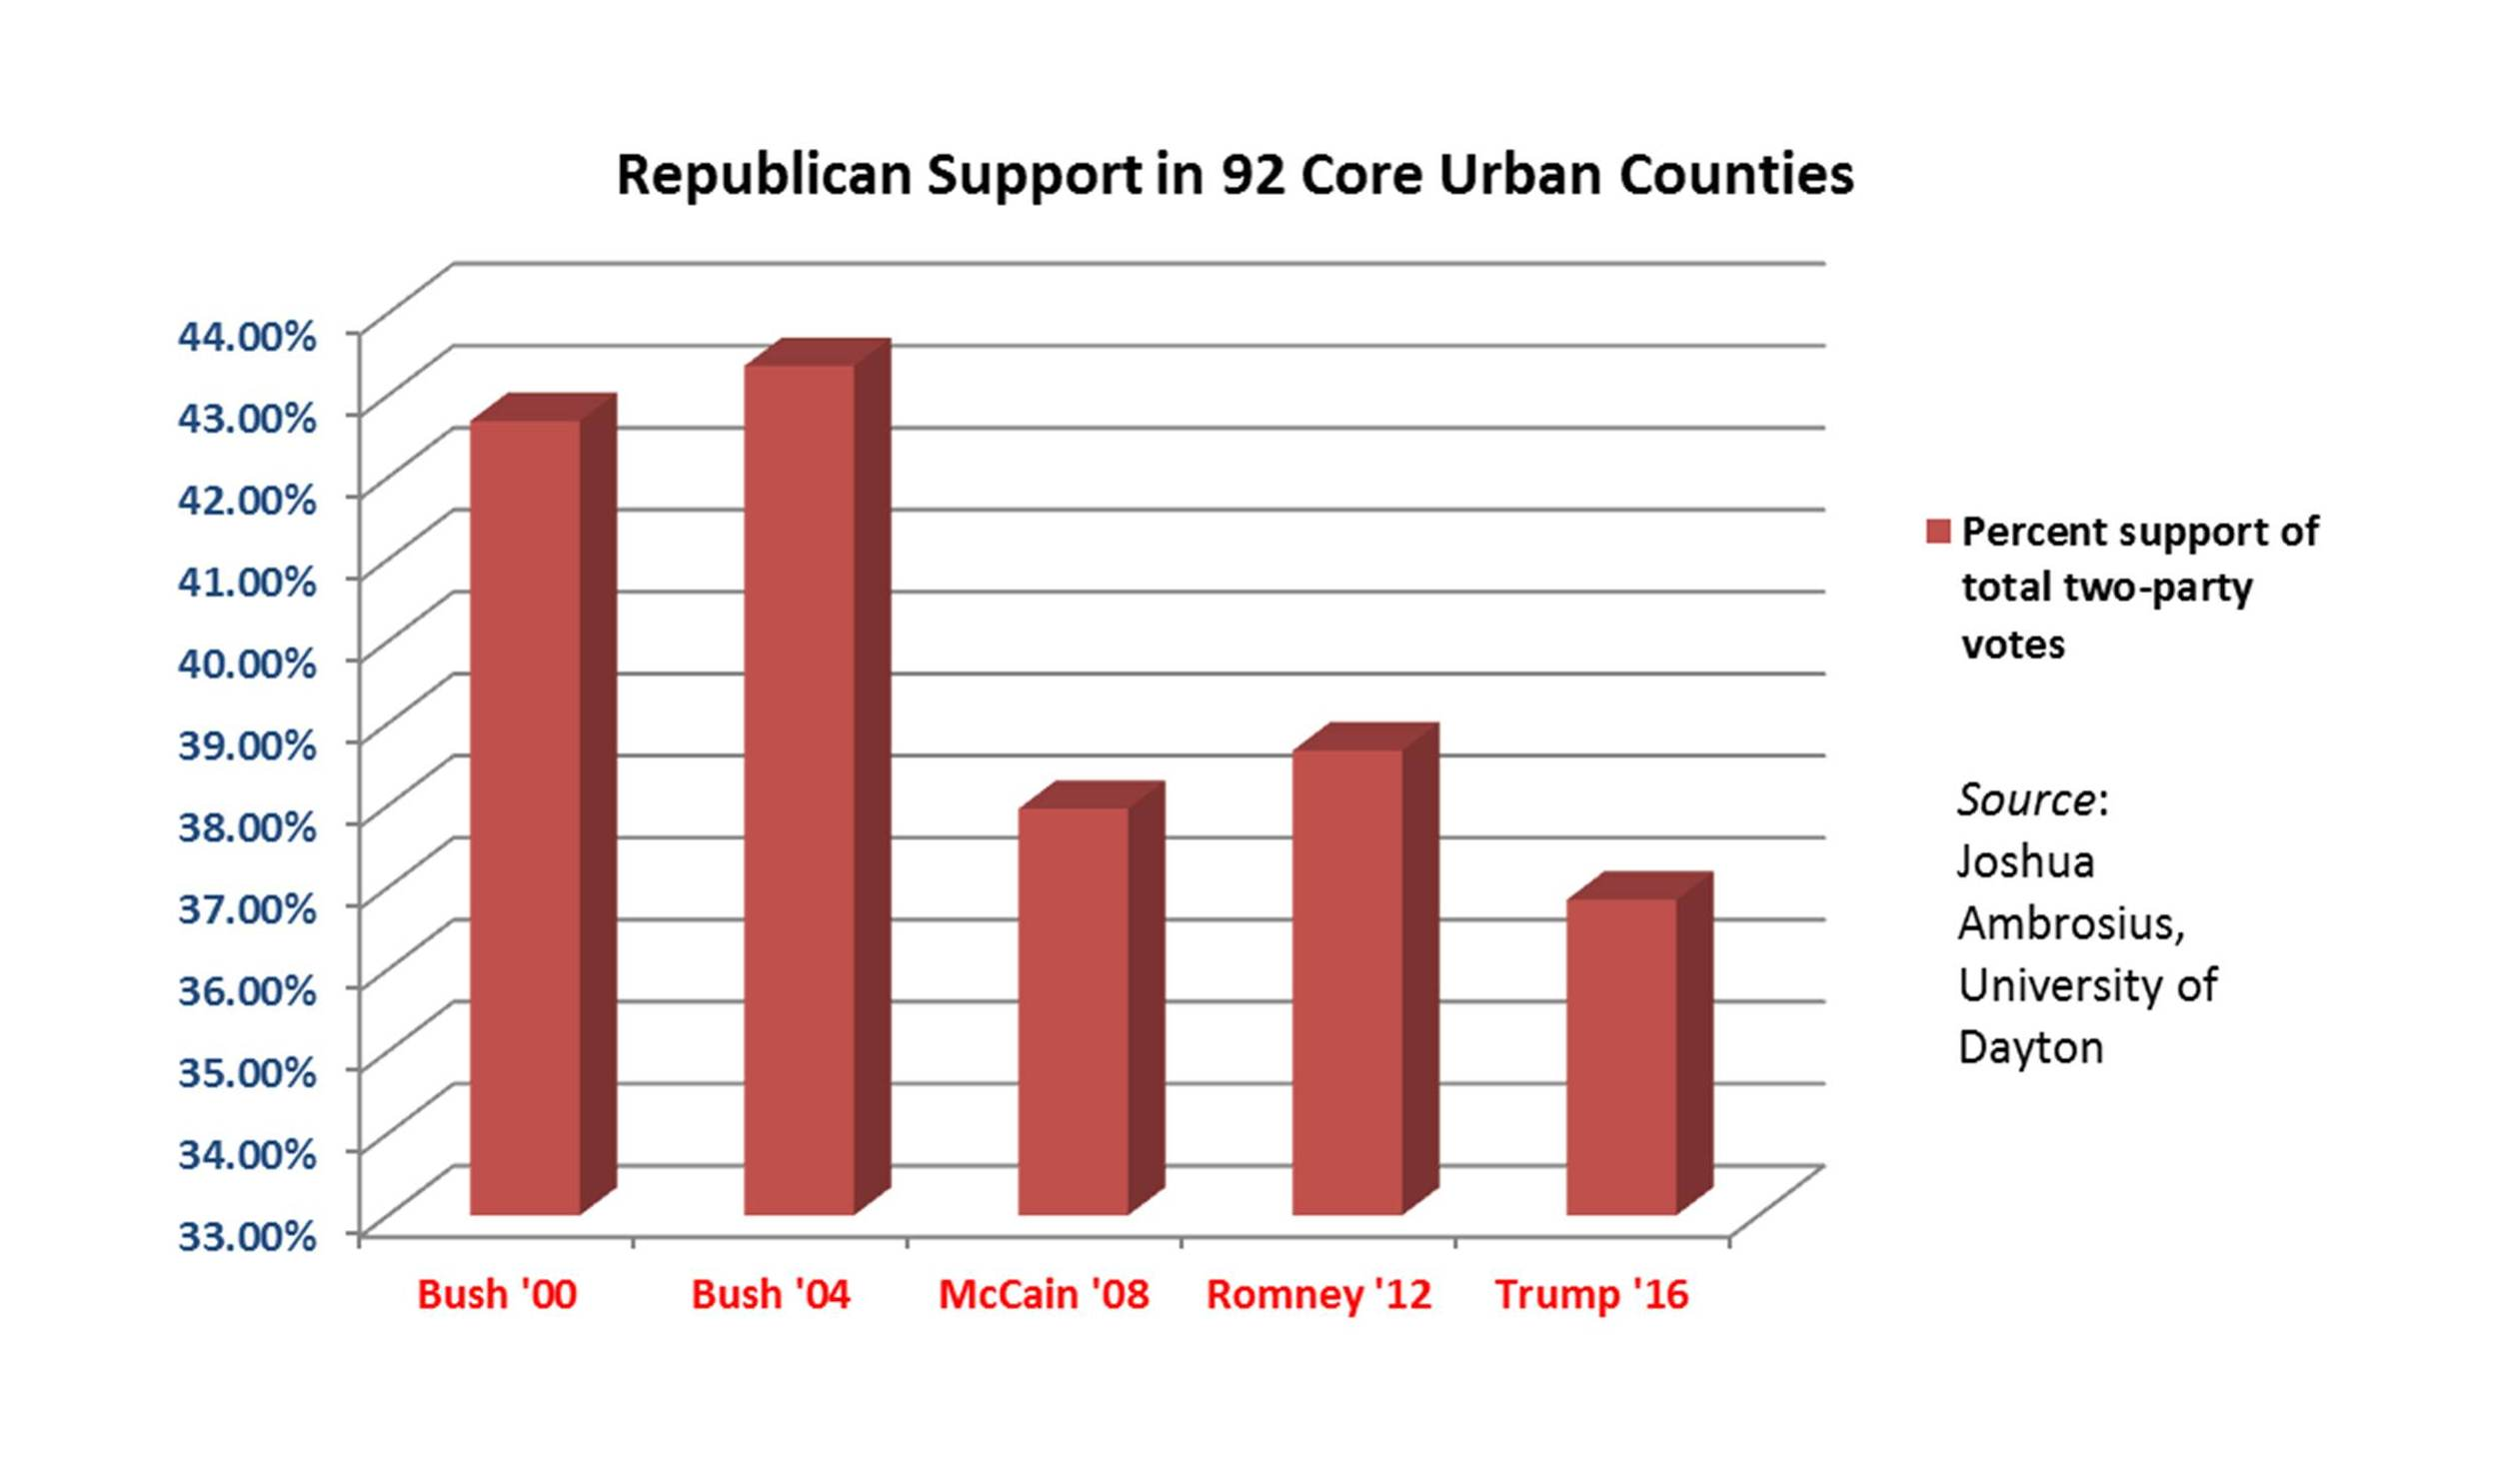 gop-core-county-support-2000-2016%5bambrosius%5d